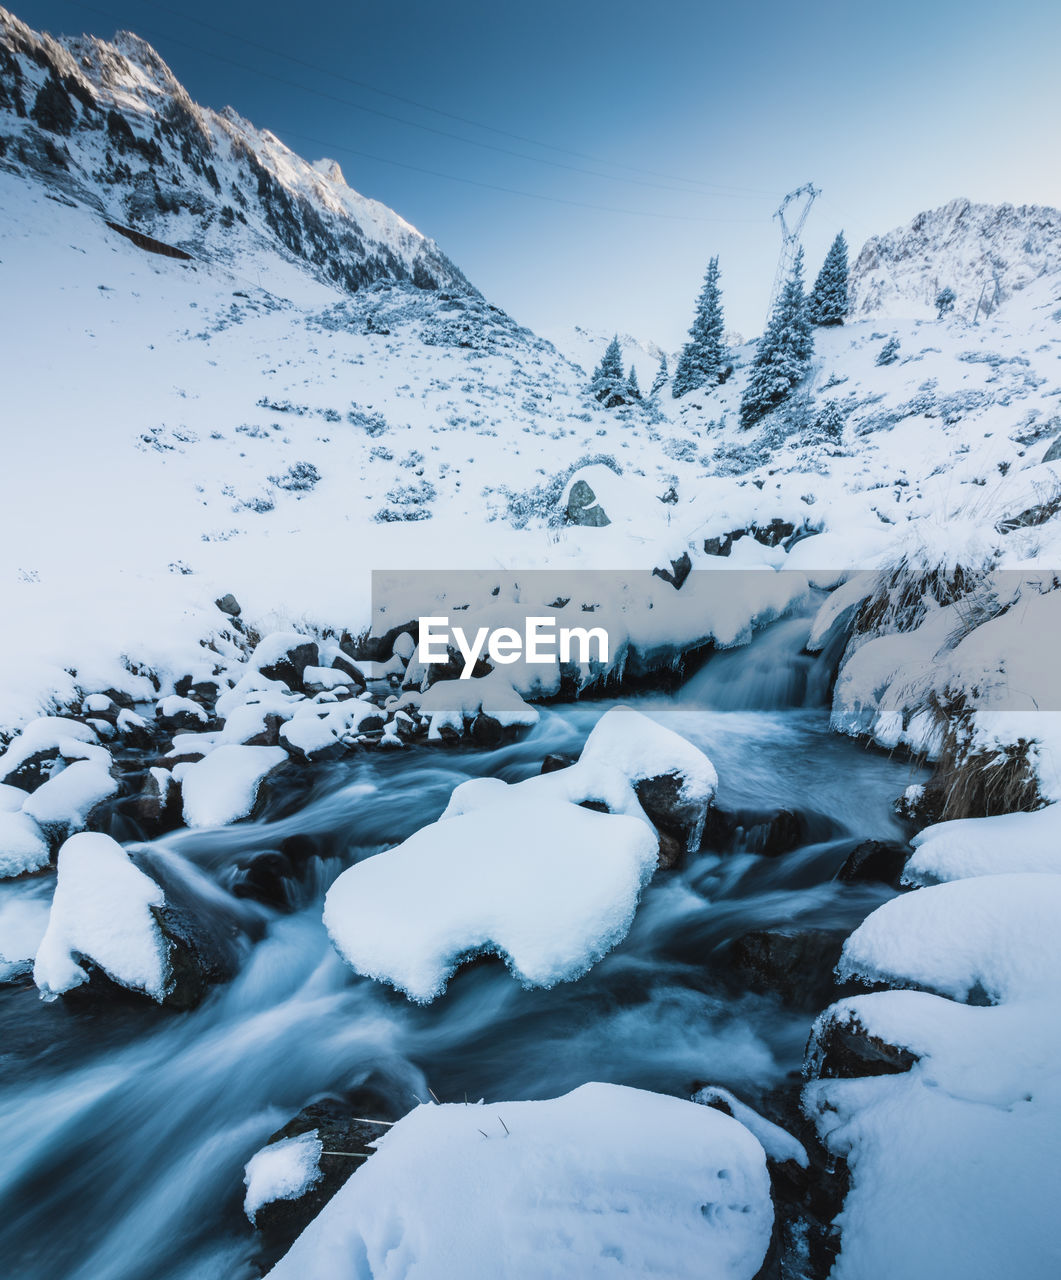 Scenic view of river flowing amidst snow covered mountains against clear sky